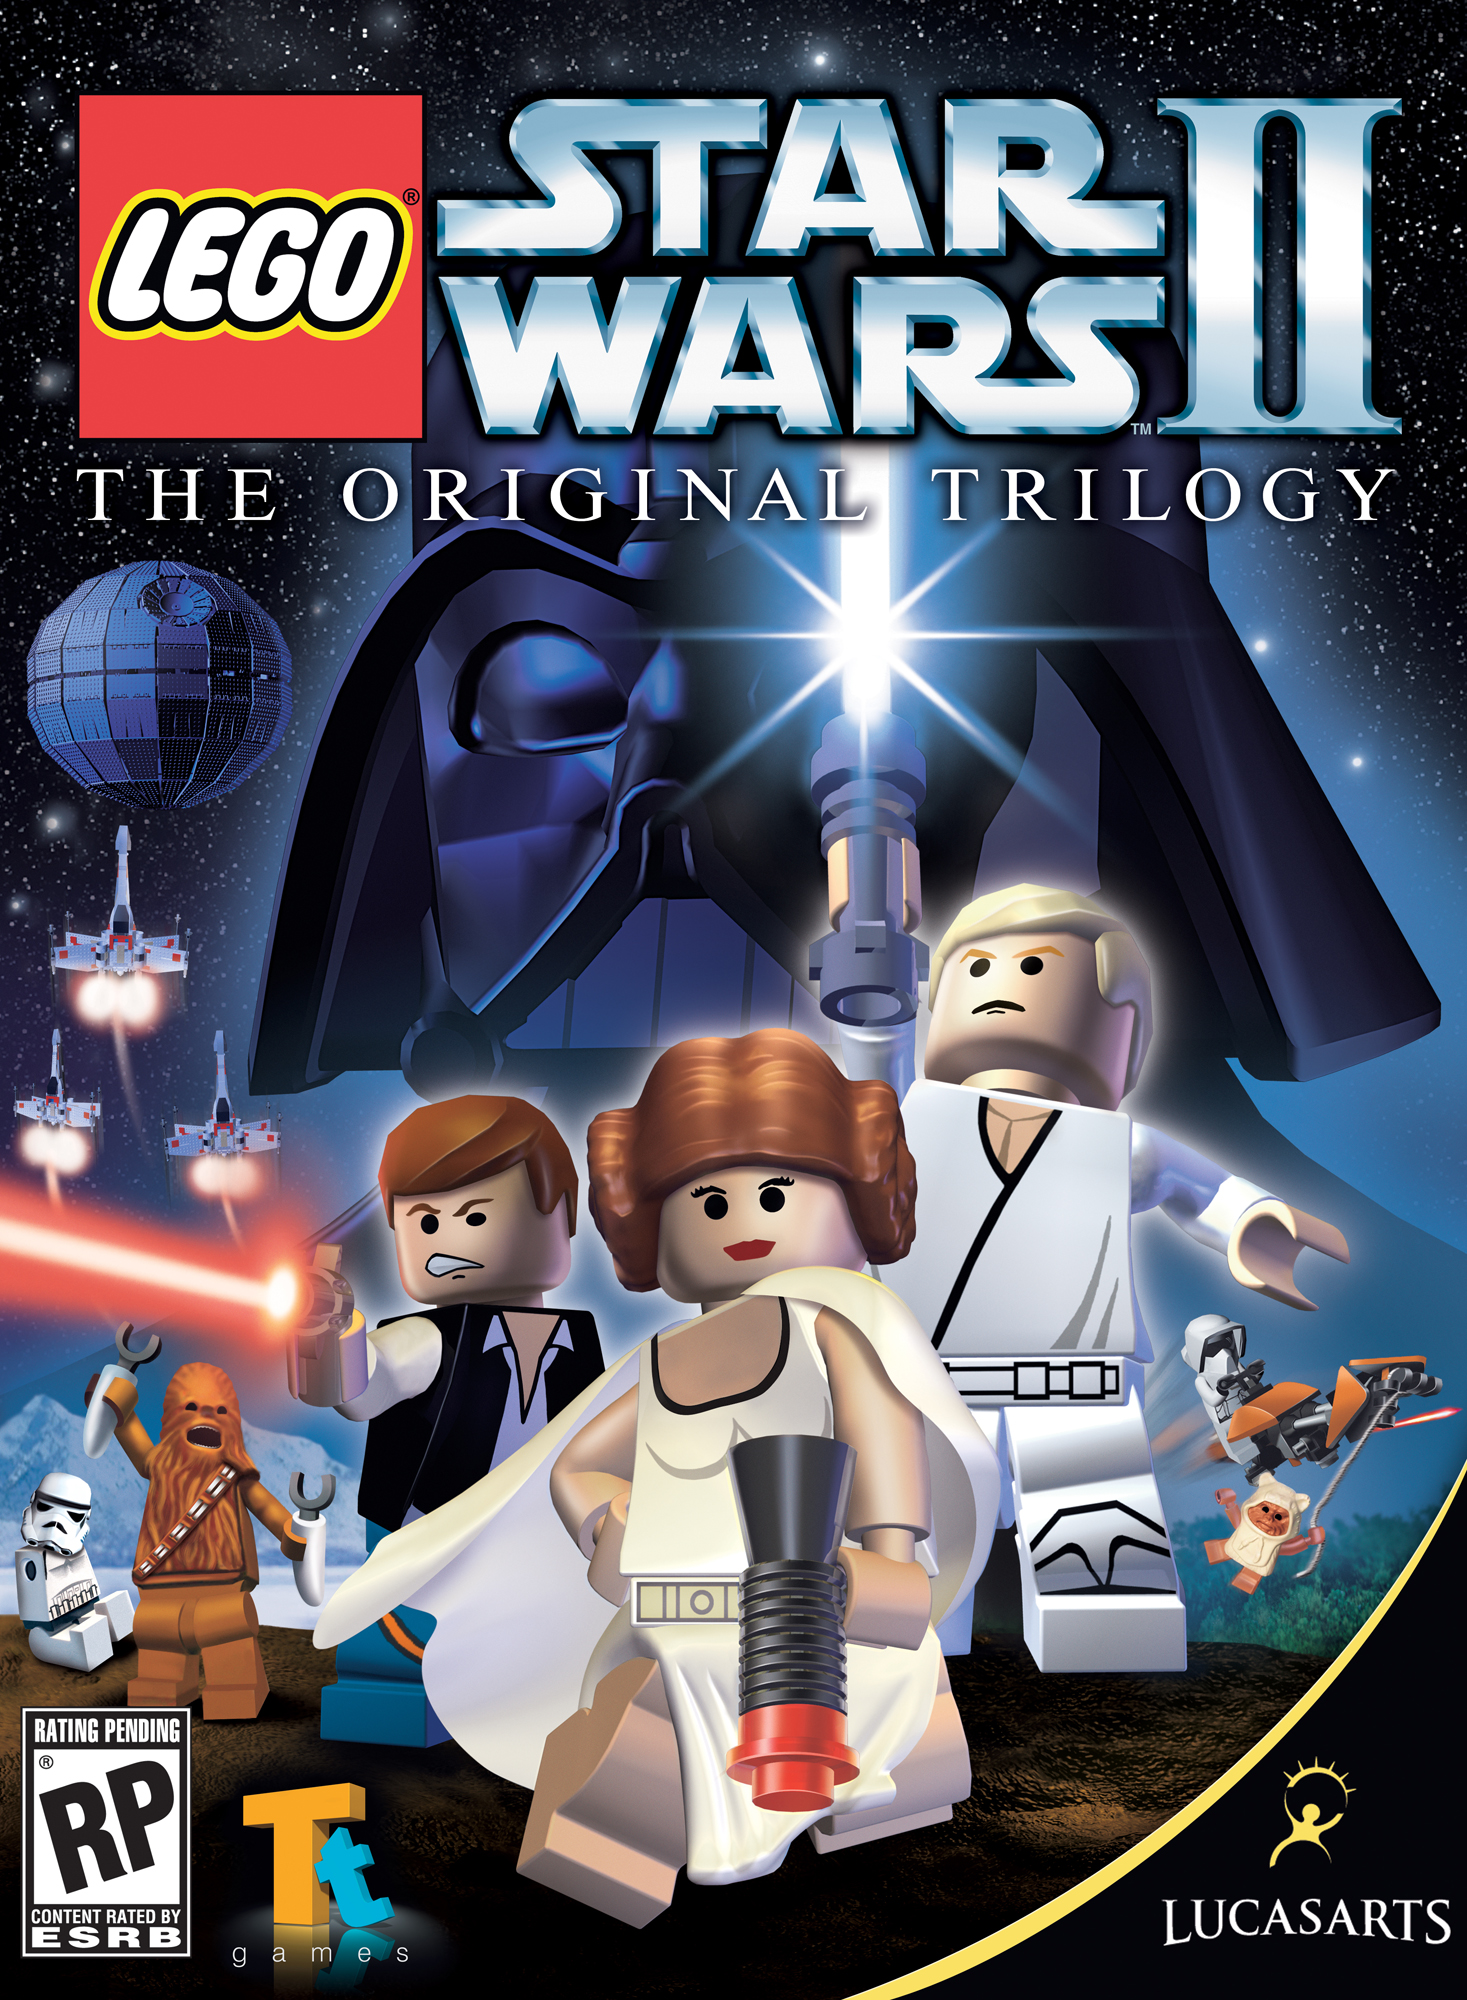 Lego star wars ii the original trilogy wookieepedia the star wars